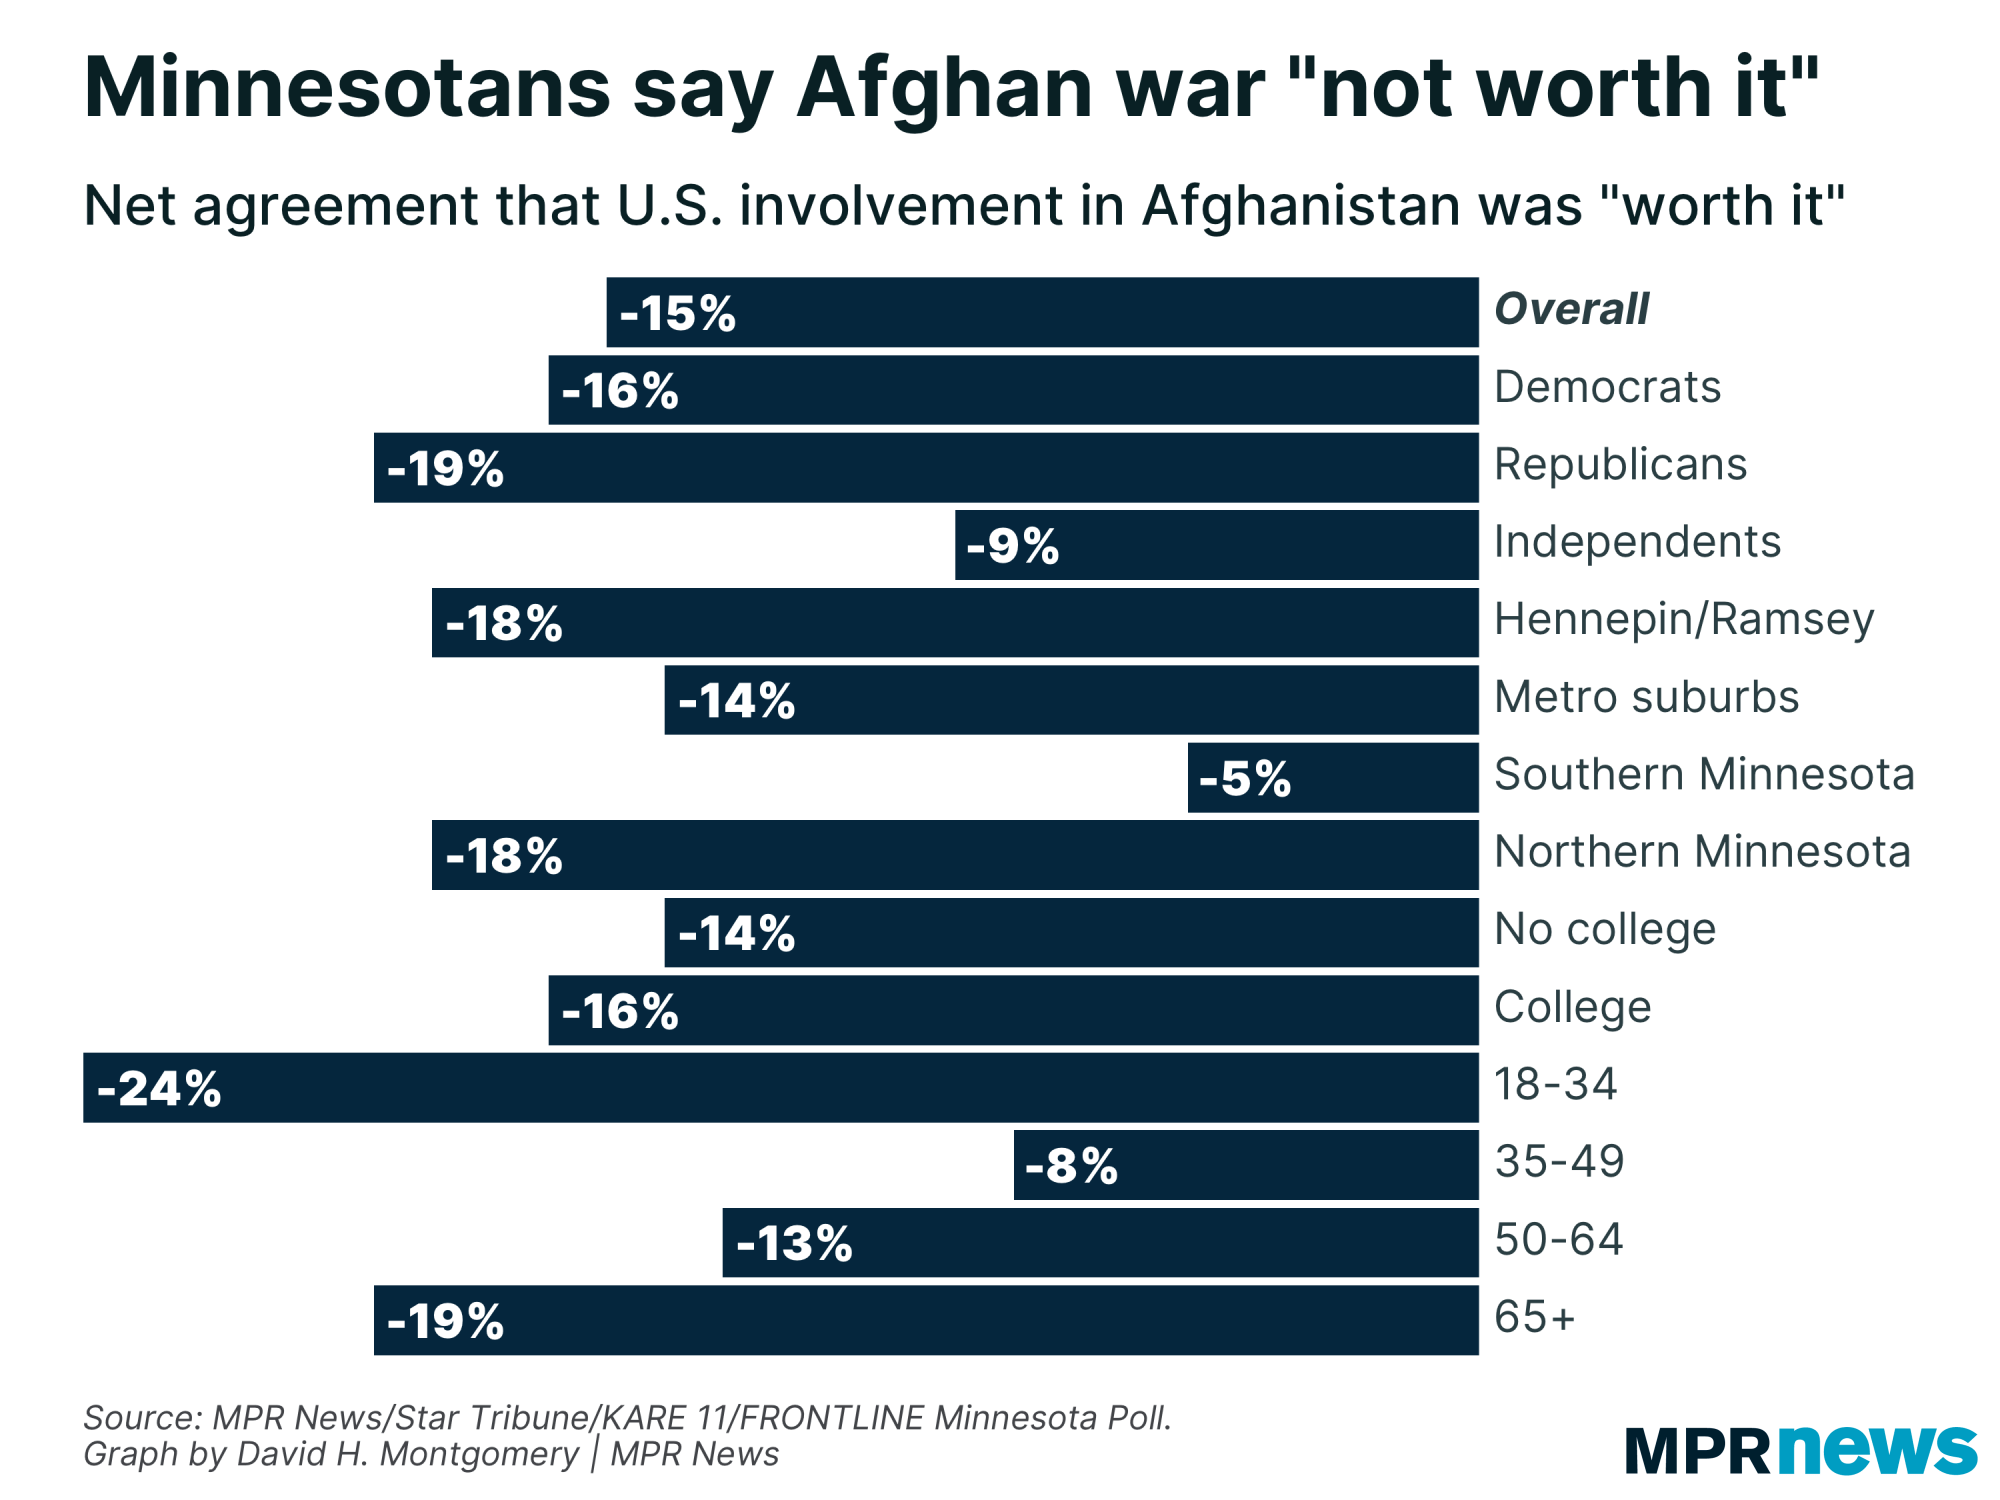 Graph of views on whether the Afghan war was worth it